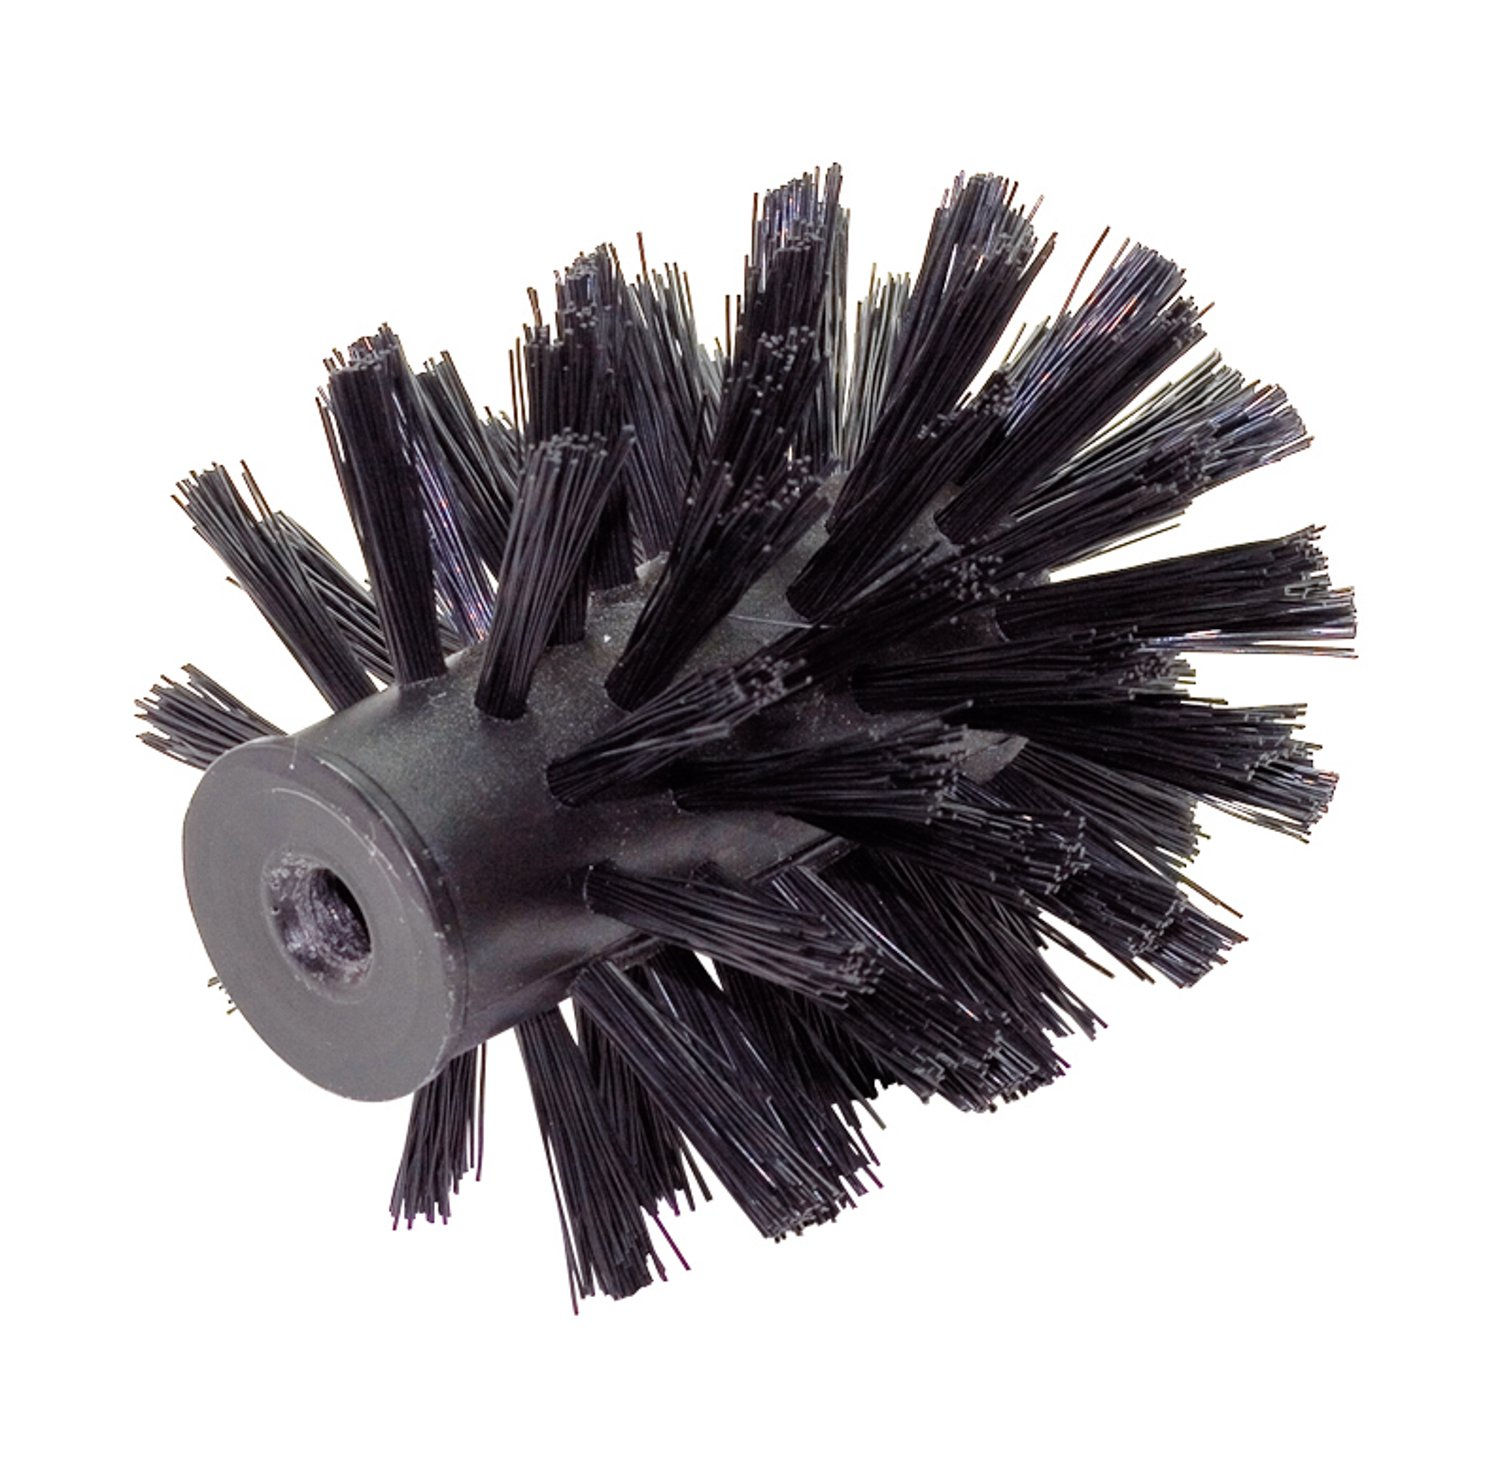 REDECKER Nylon Toilet Brush Replacement Head, 3-Inches